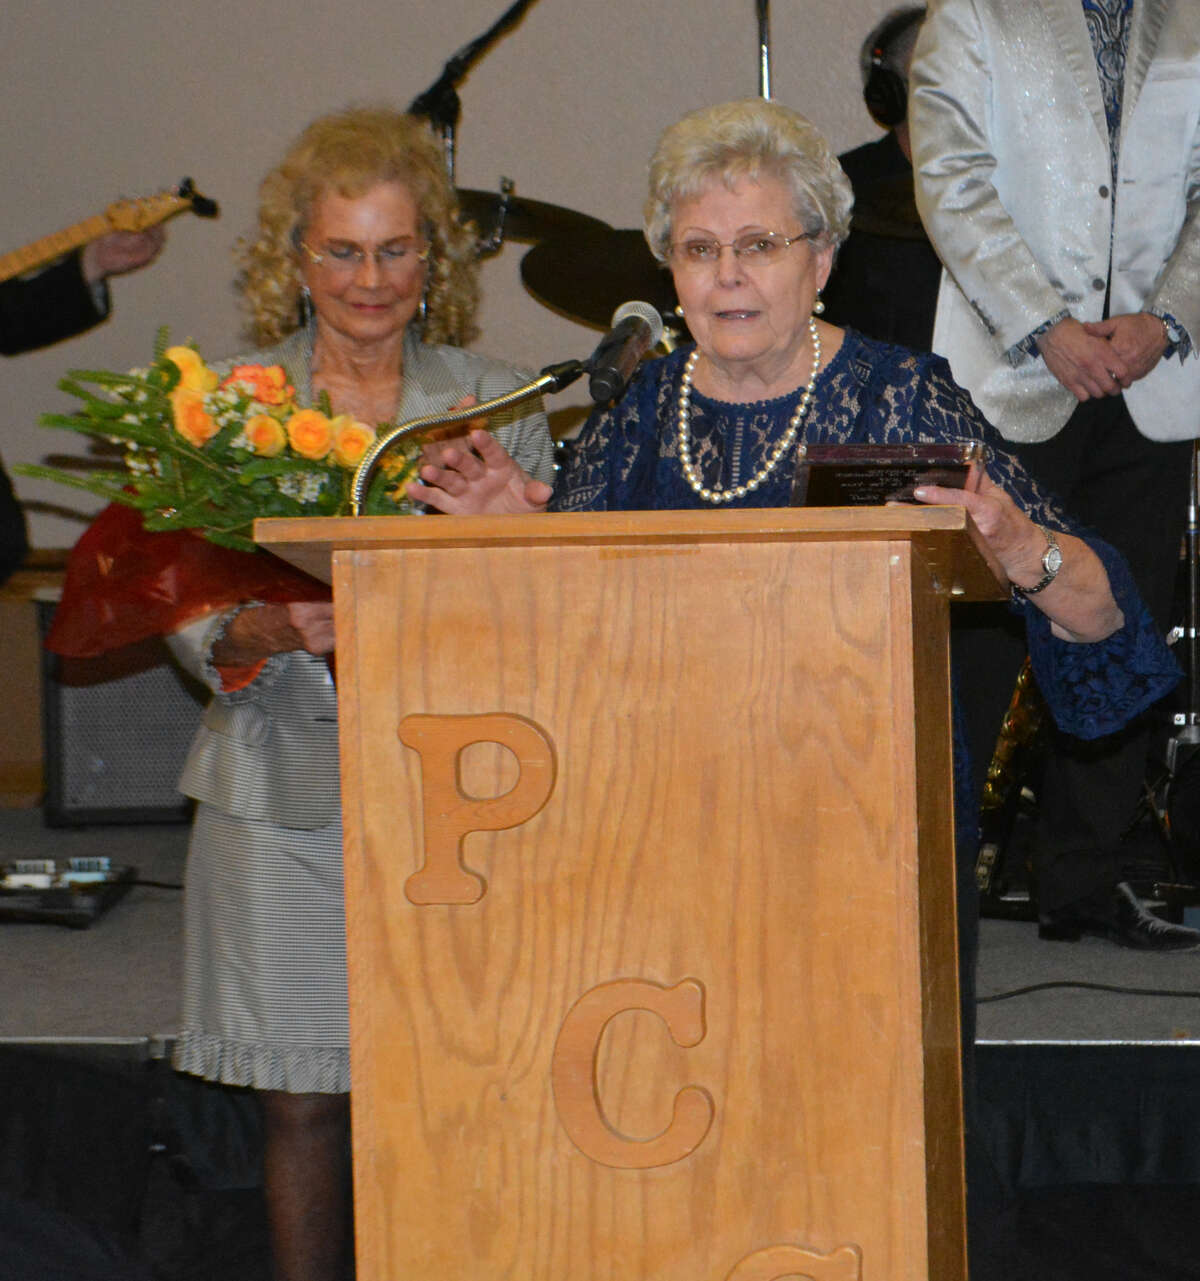 2017 Woman of the Year Evelyn Ball speaks to the assembled crowd at the Plainview Chamber of Commerce's annual banquet Thursday while 2016 Woman of the Year Norvene Owen looks on.